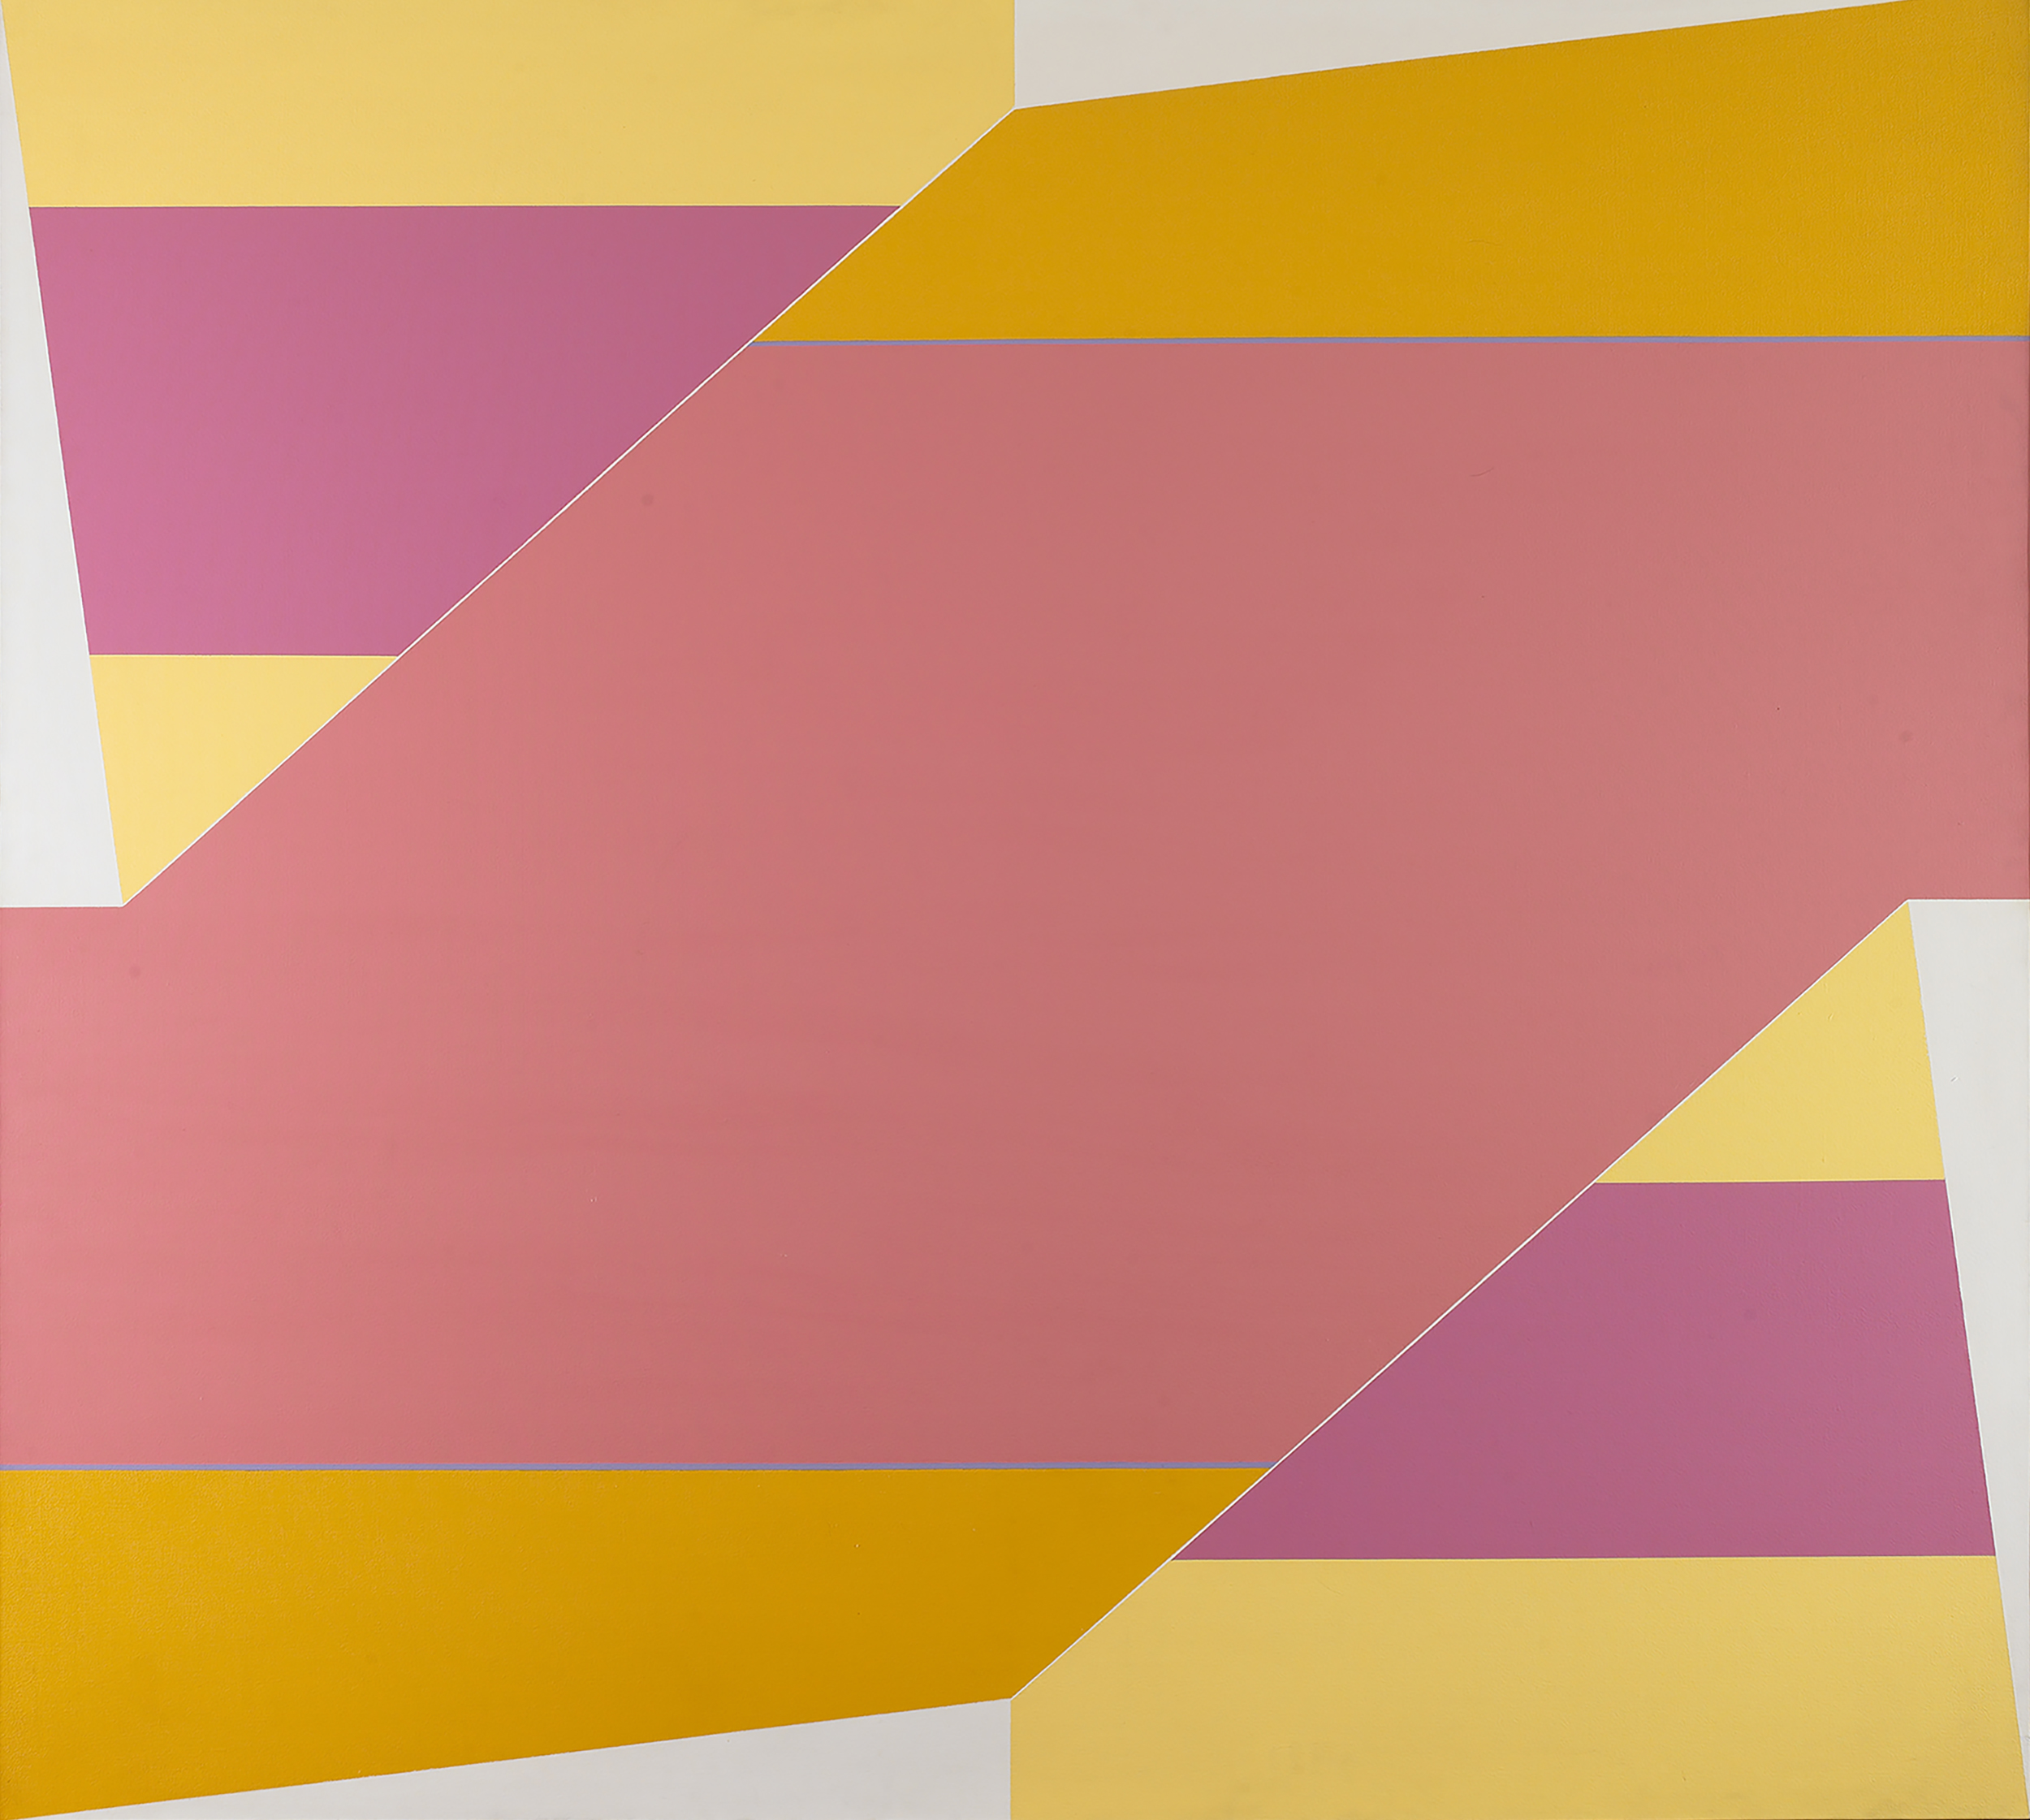 P.a.  , Acrylic on canvas, 1964, 66 x 72 inches